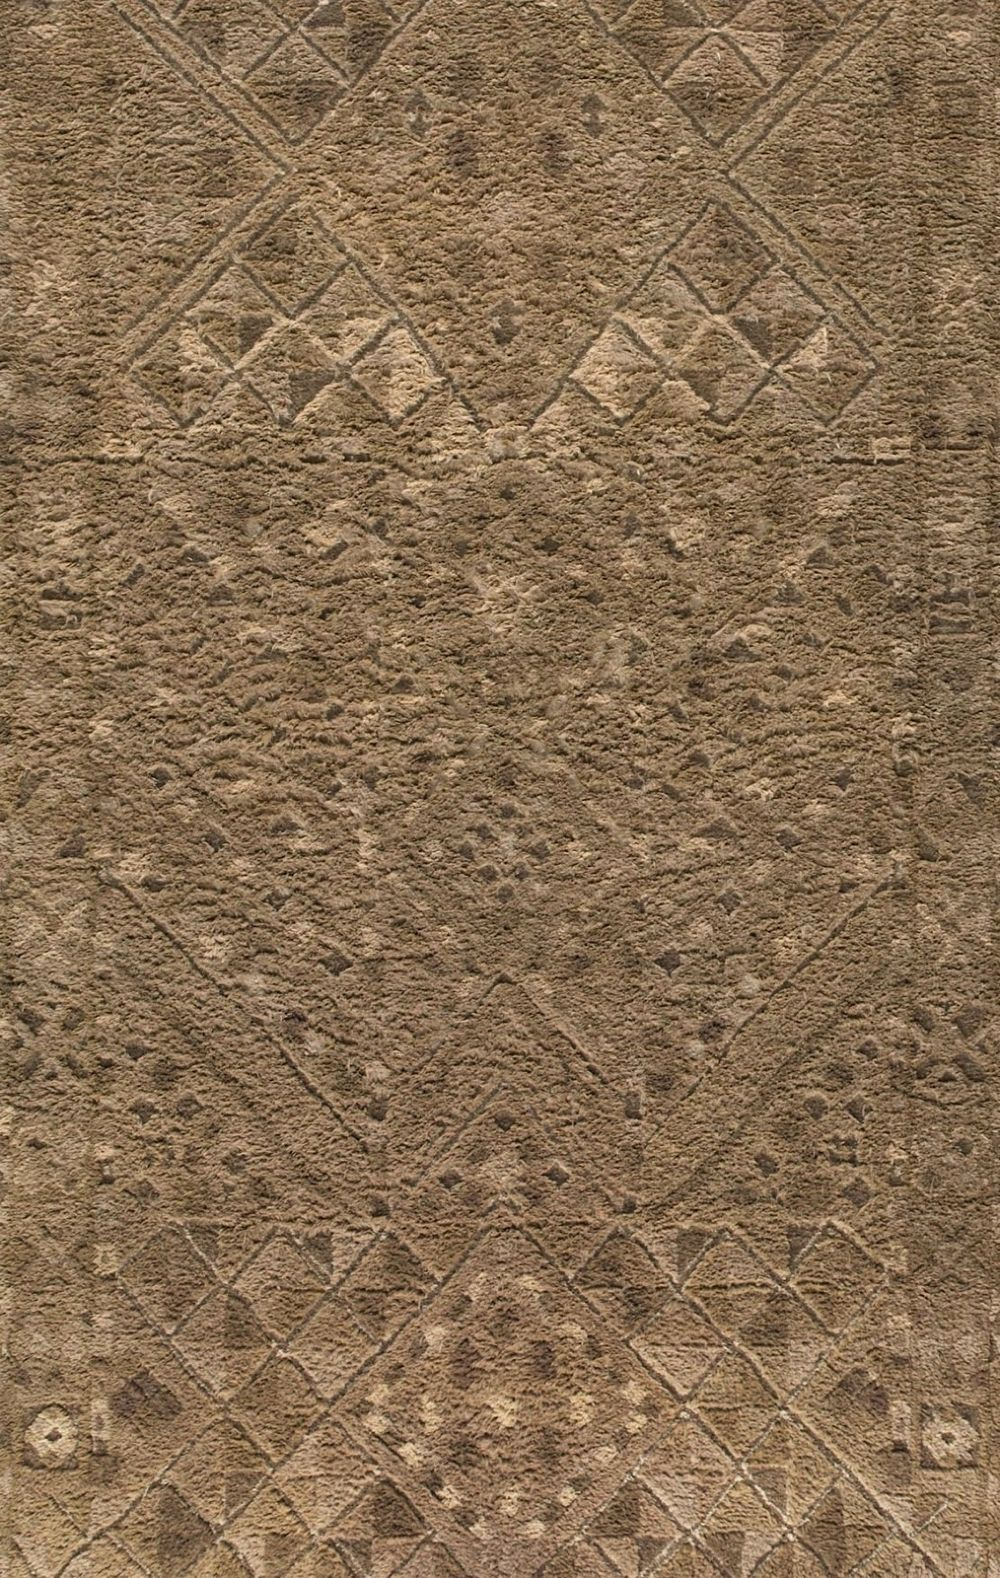 uttermost safi contemporary area rug collection